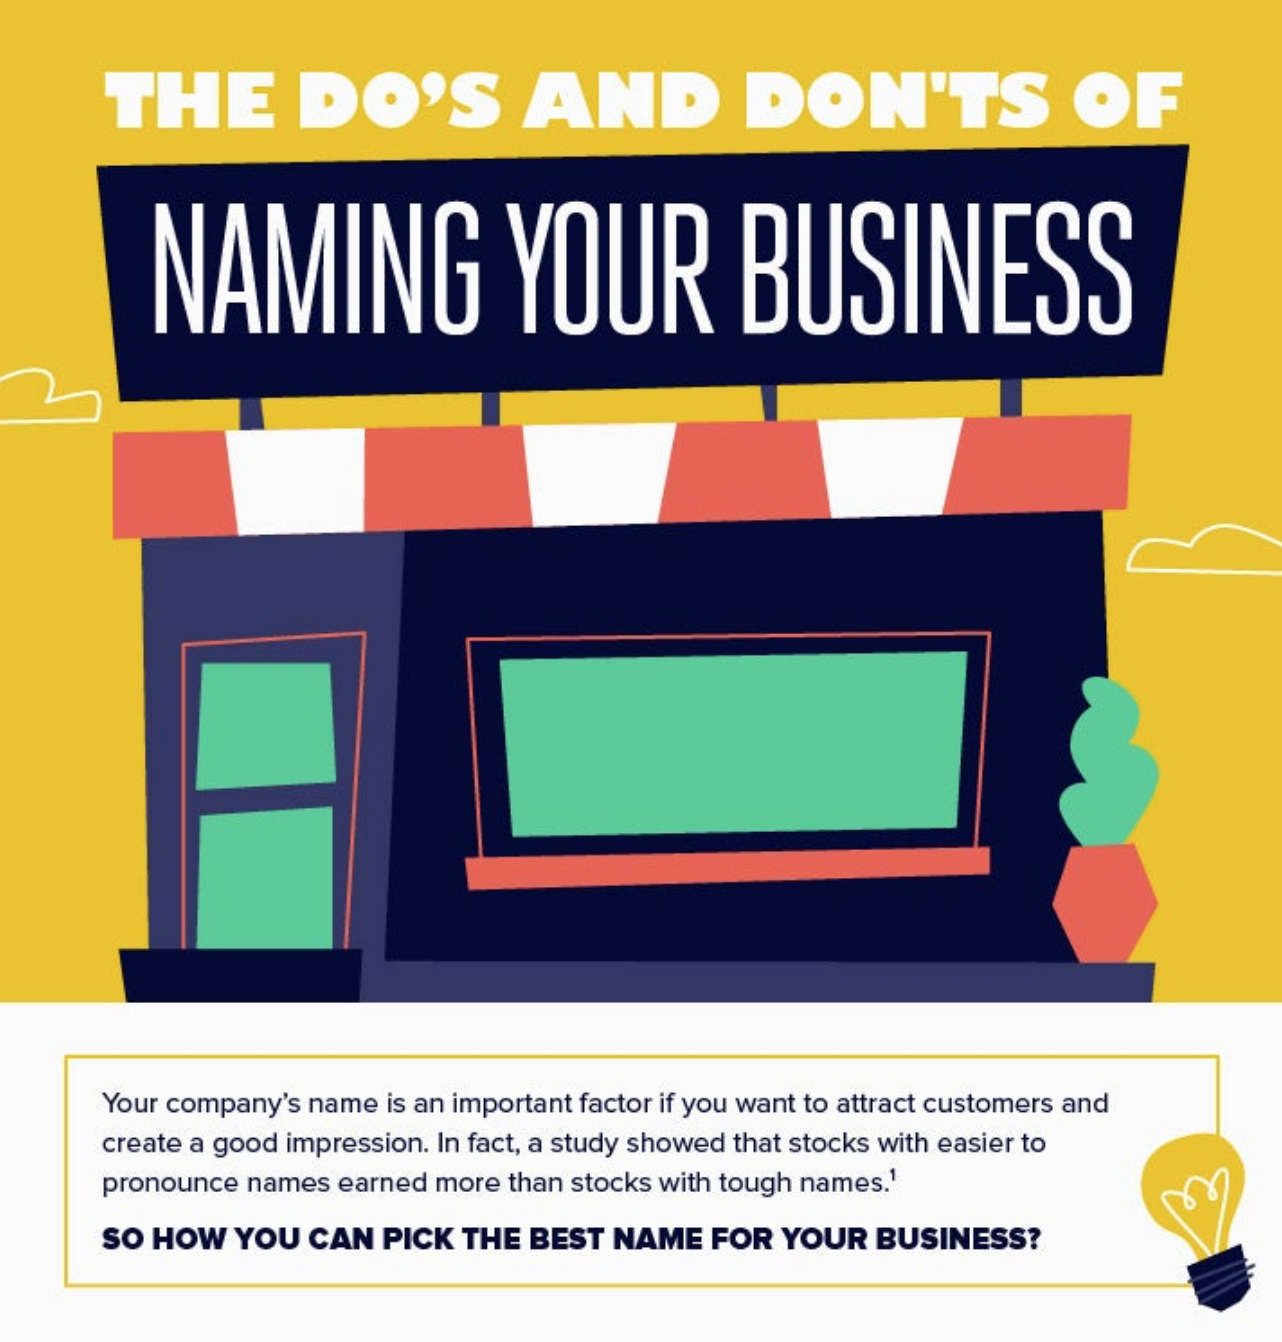 the do's and don'ts of naming your business